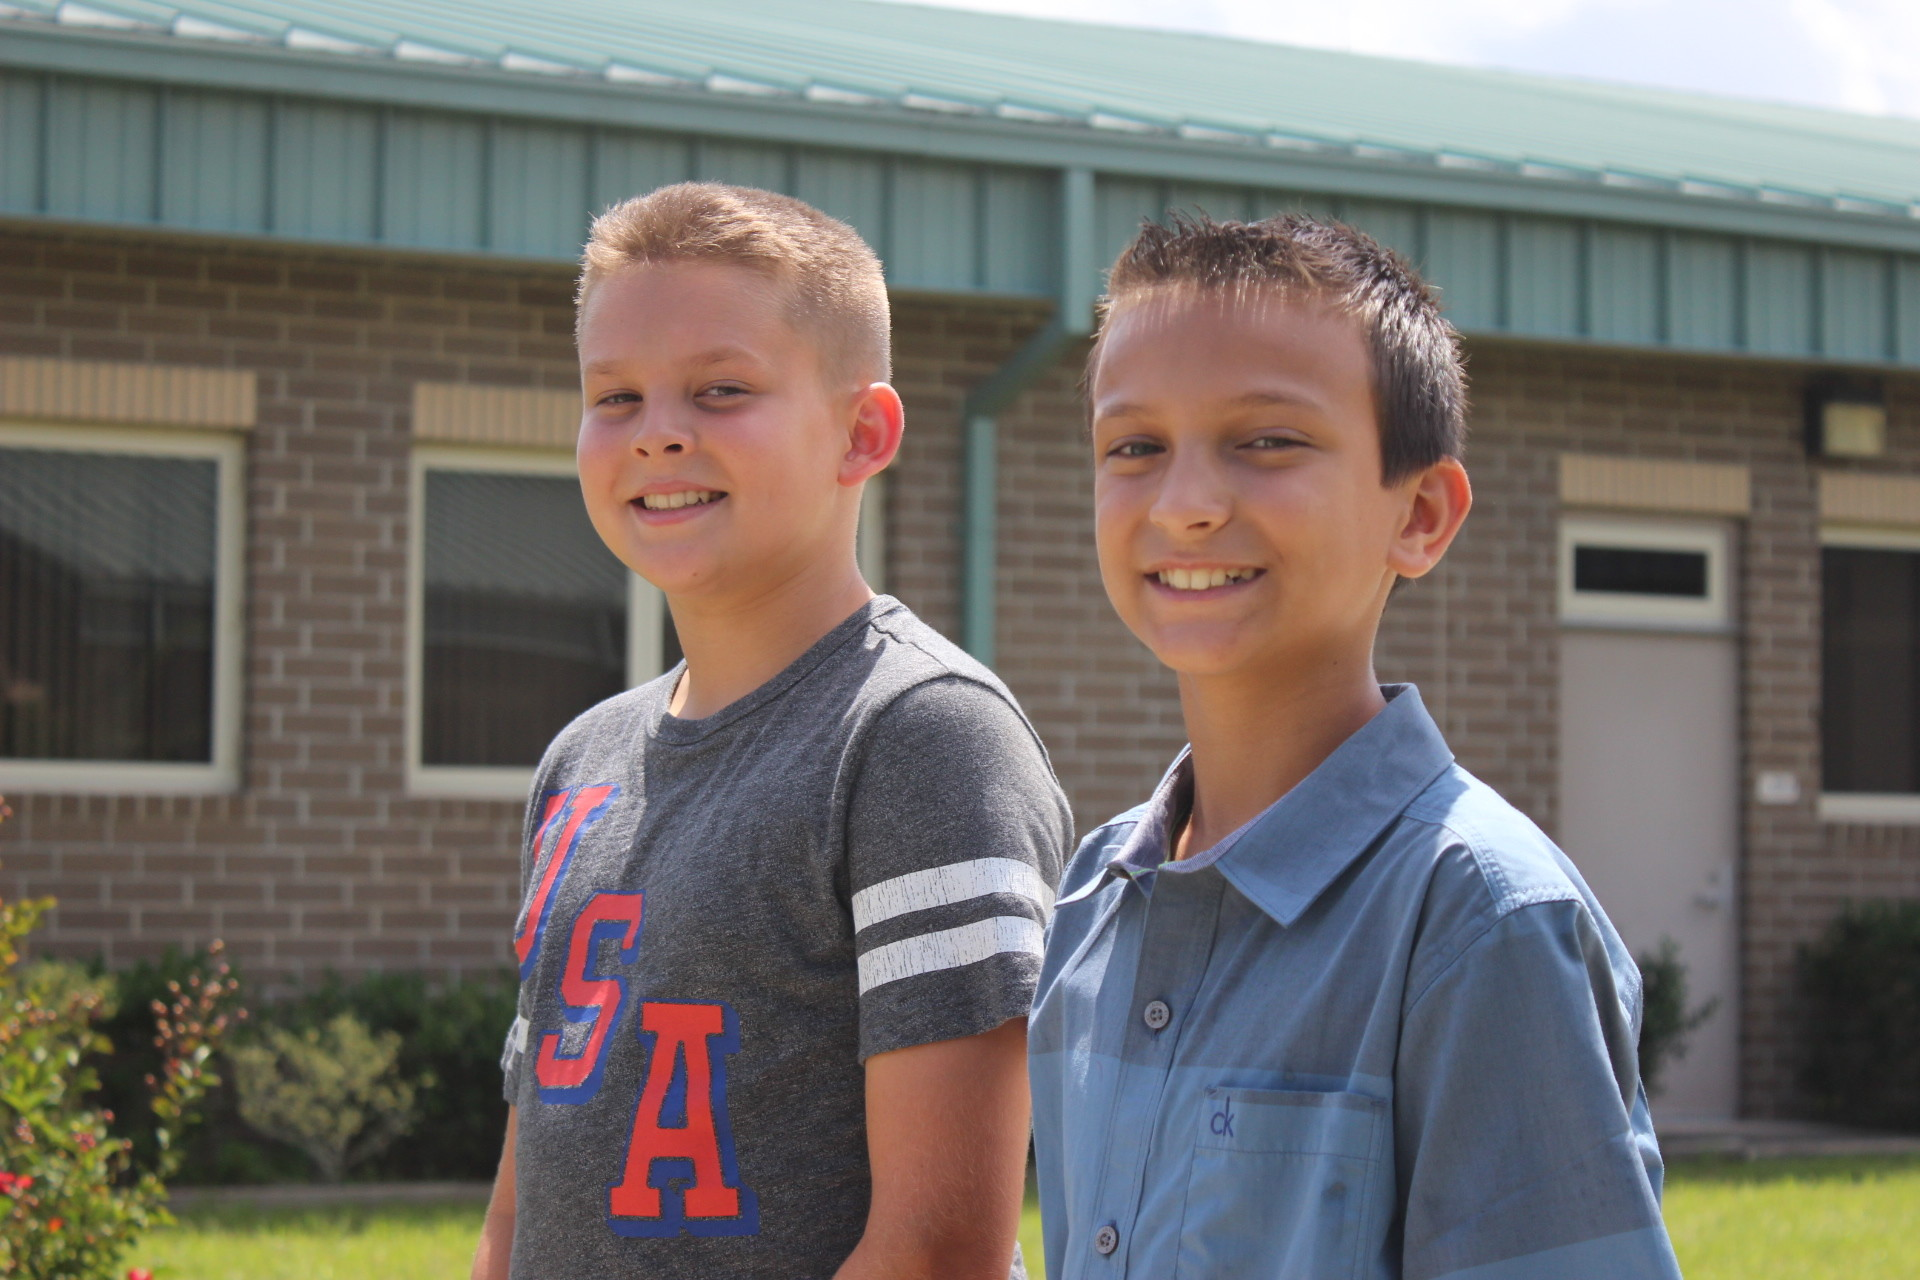 From left, Nate Helmuth and Isaac Davis, both 11, stand at the same pole they folded the United States flag at during an Aug. 17 rainstorm at Coppergate Elementary.